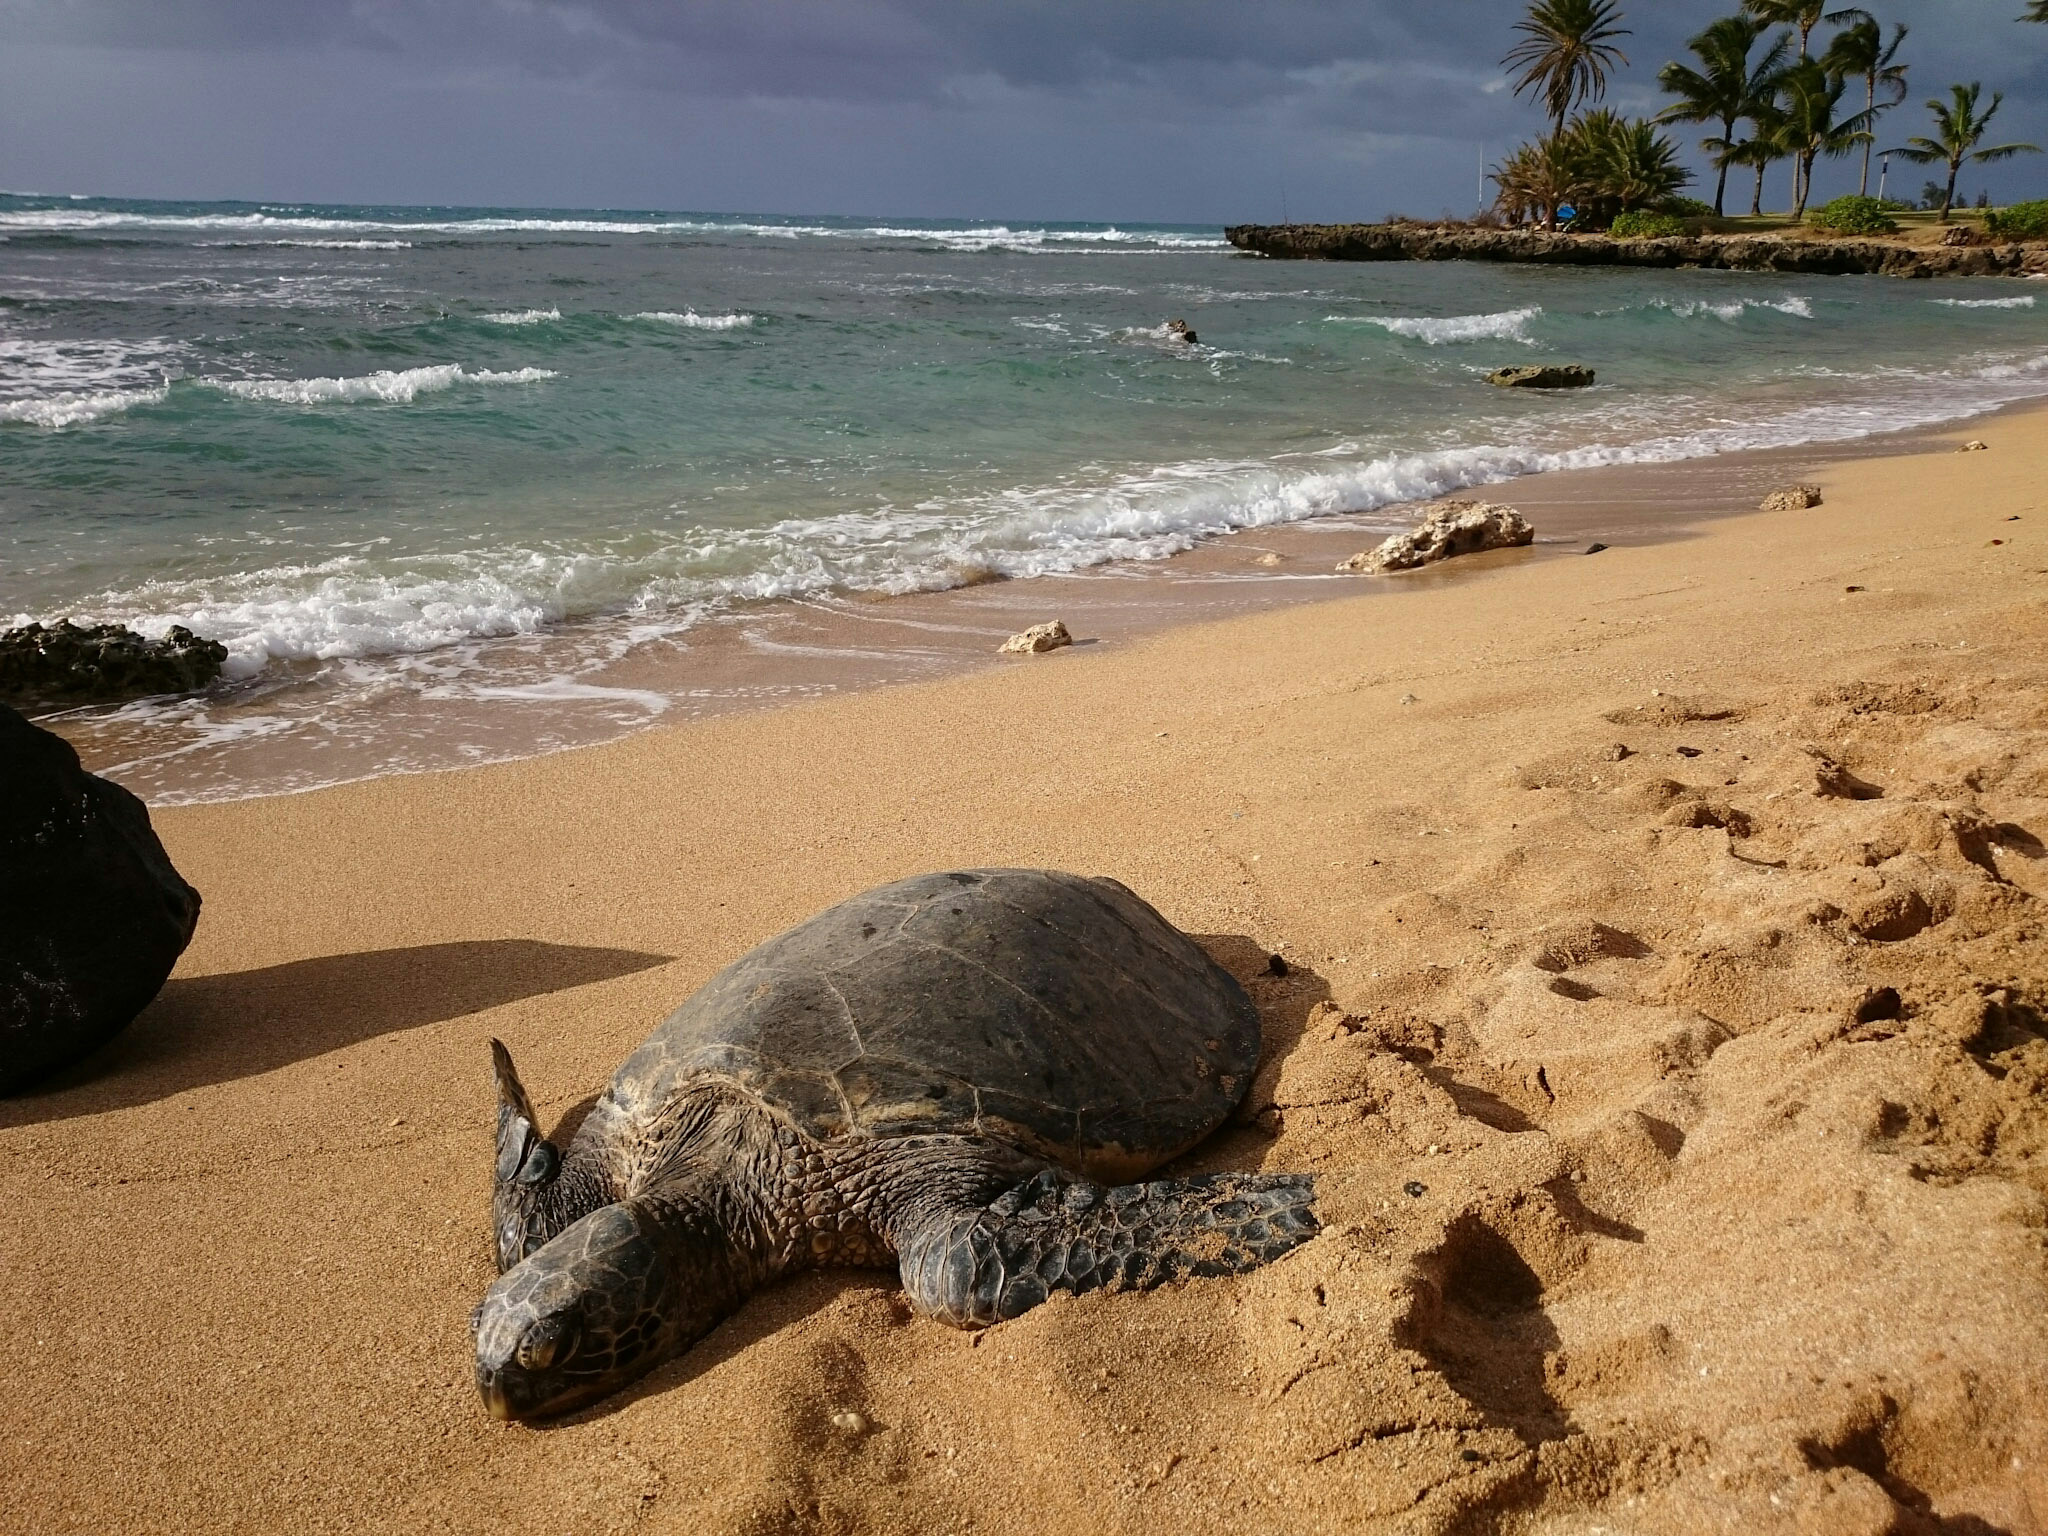 Sunbathing on Haleiwa Ali'i beach